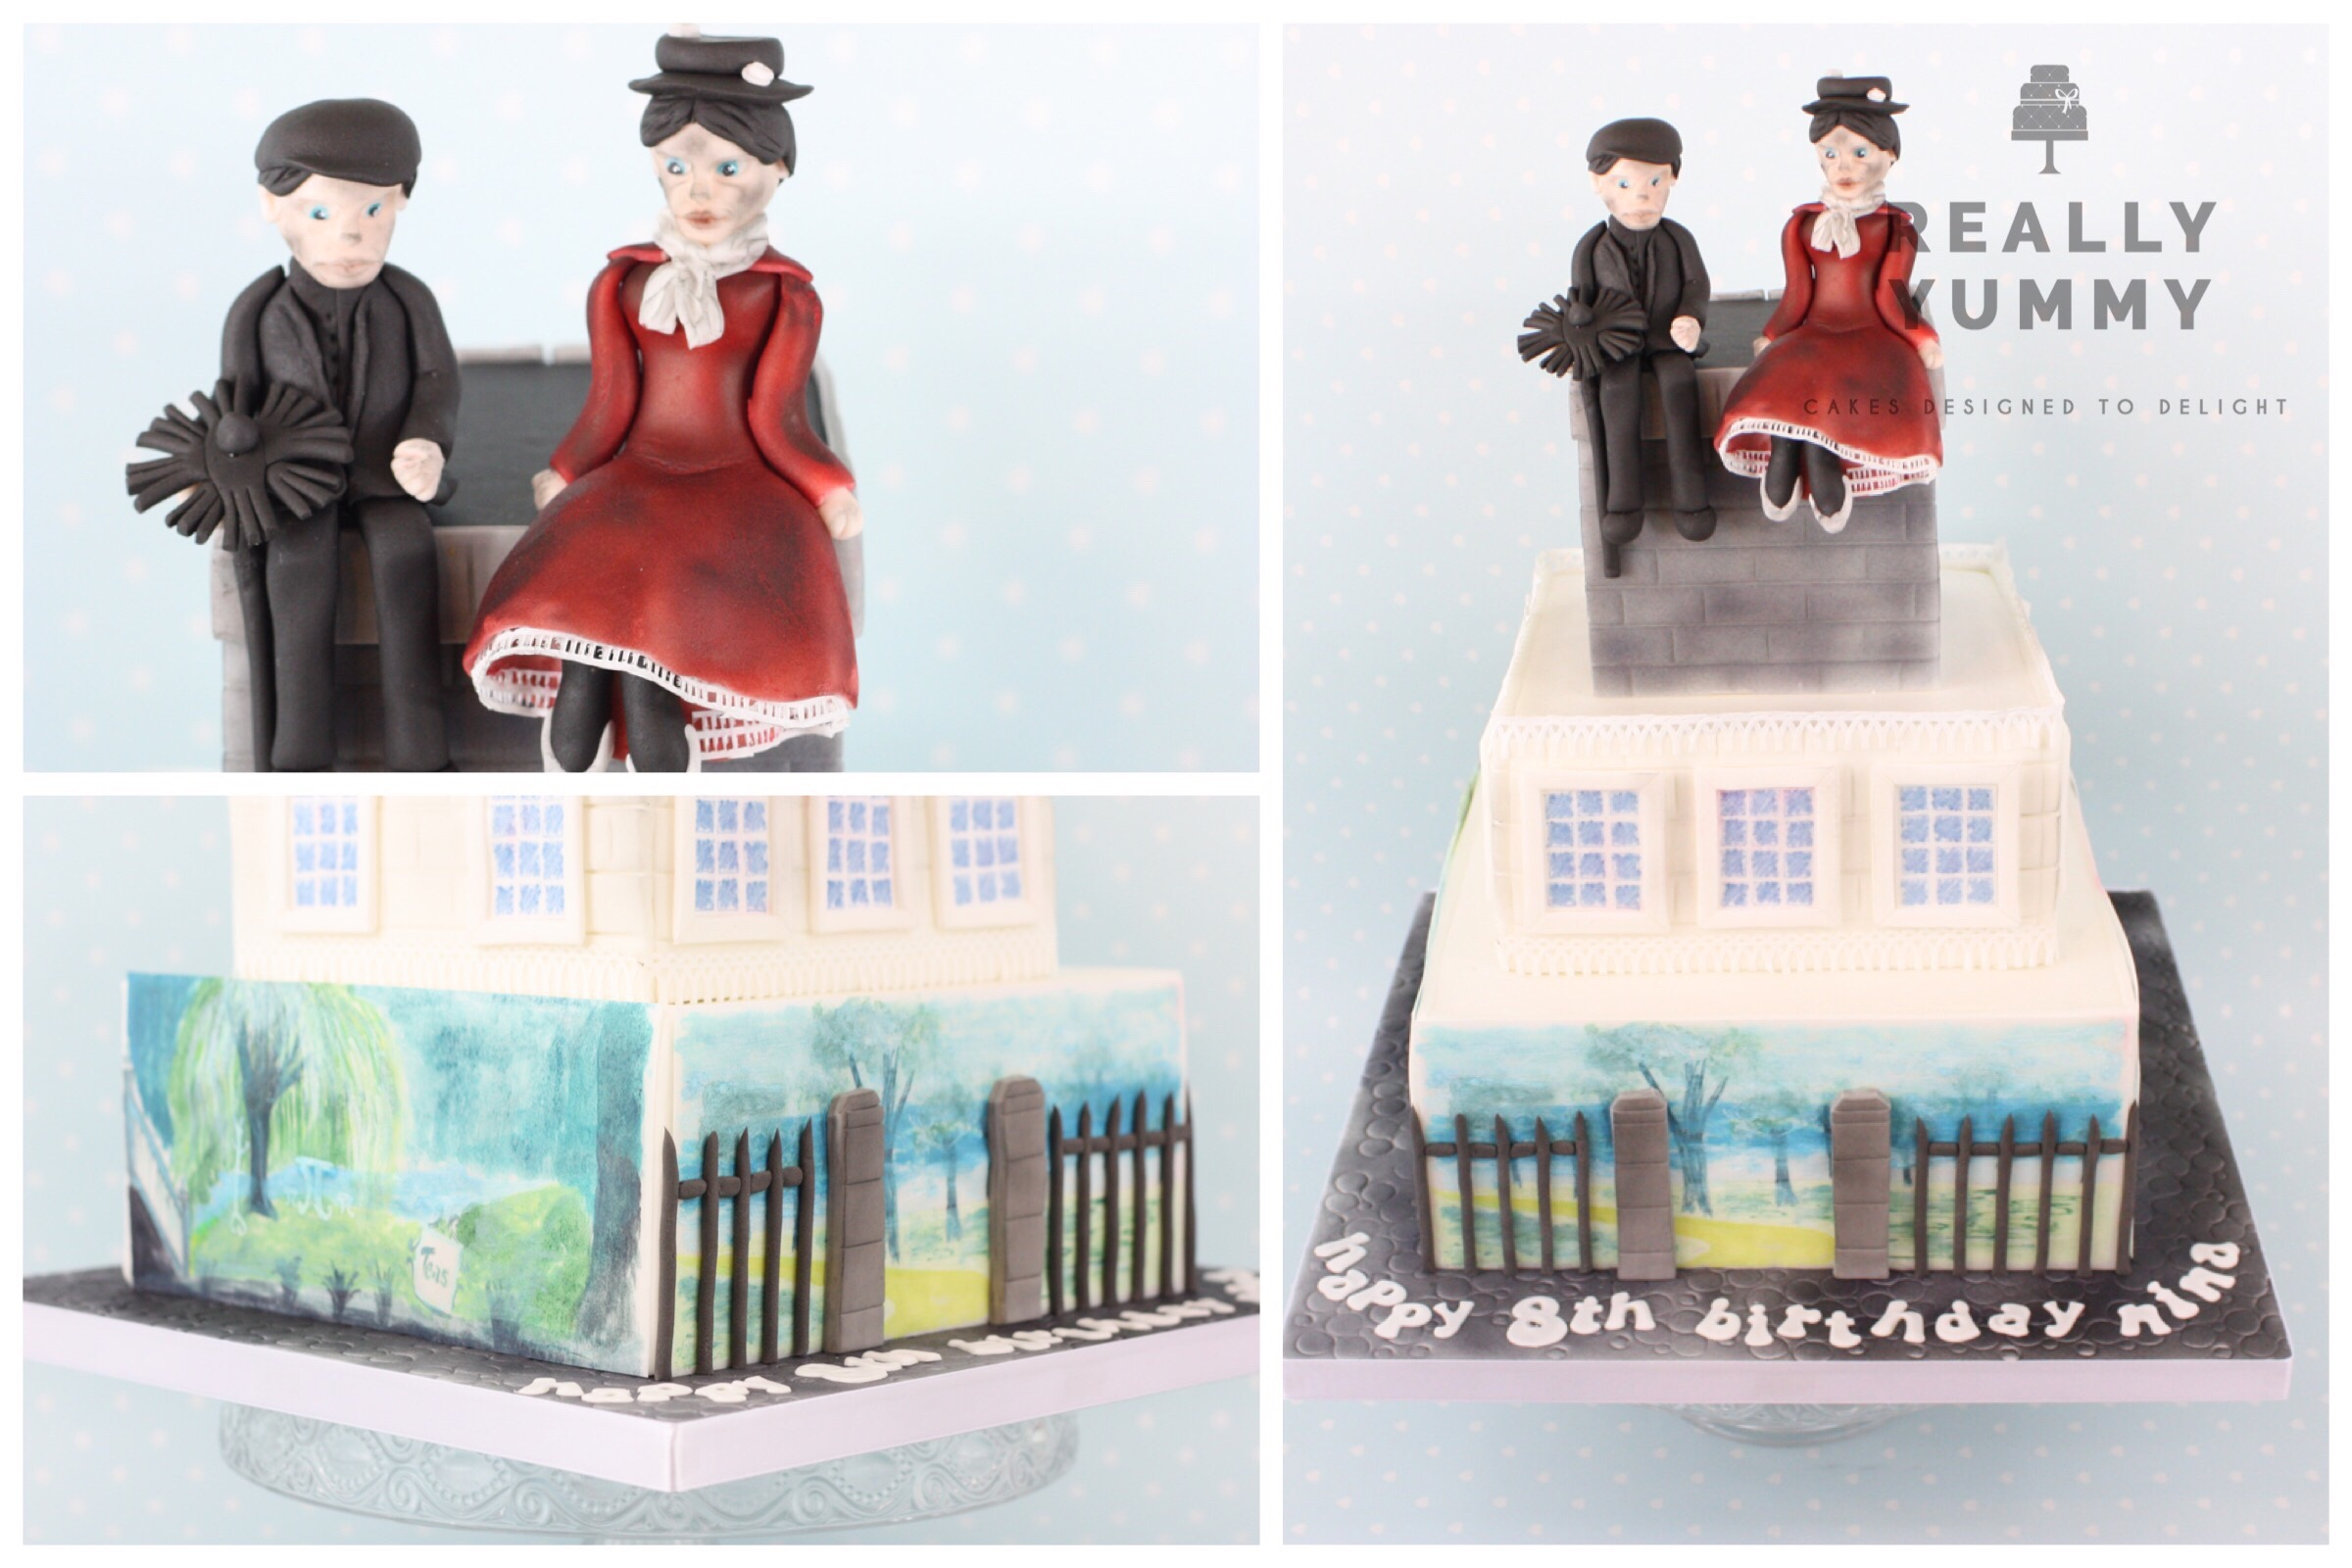 Mary Poppins cake, with Bert